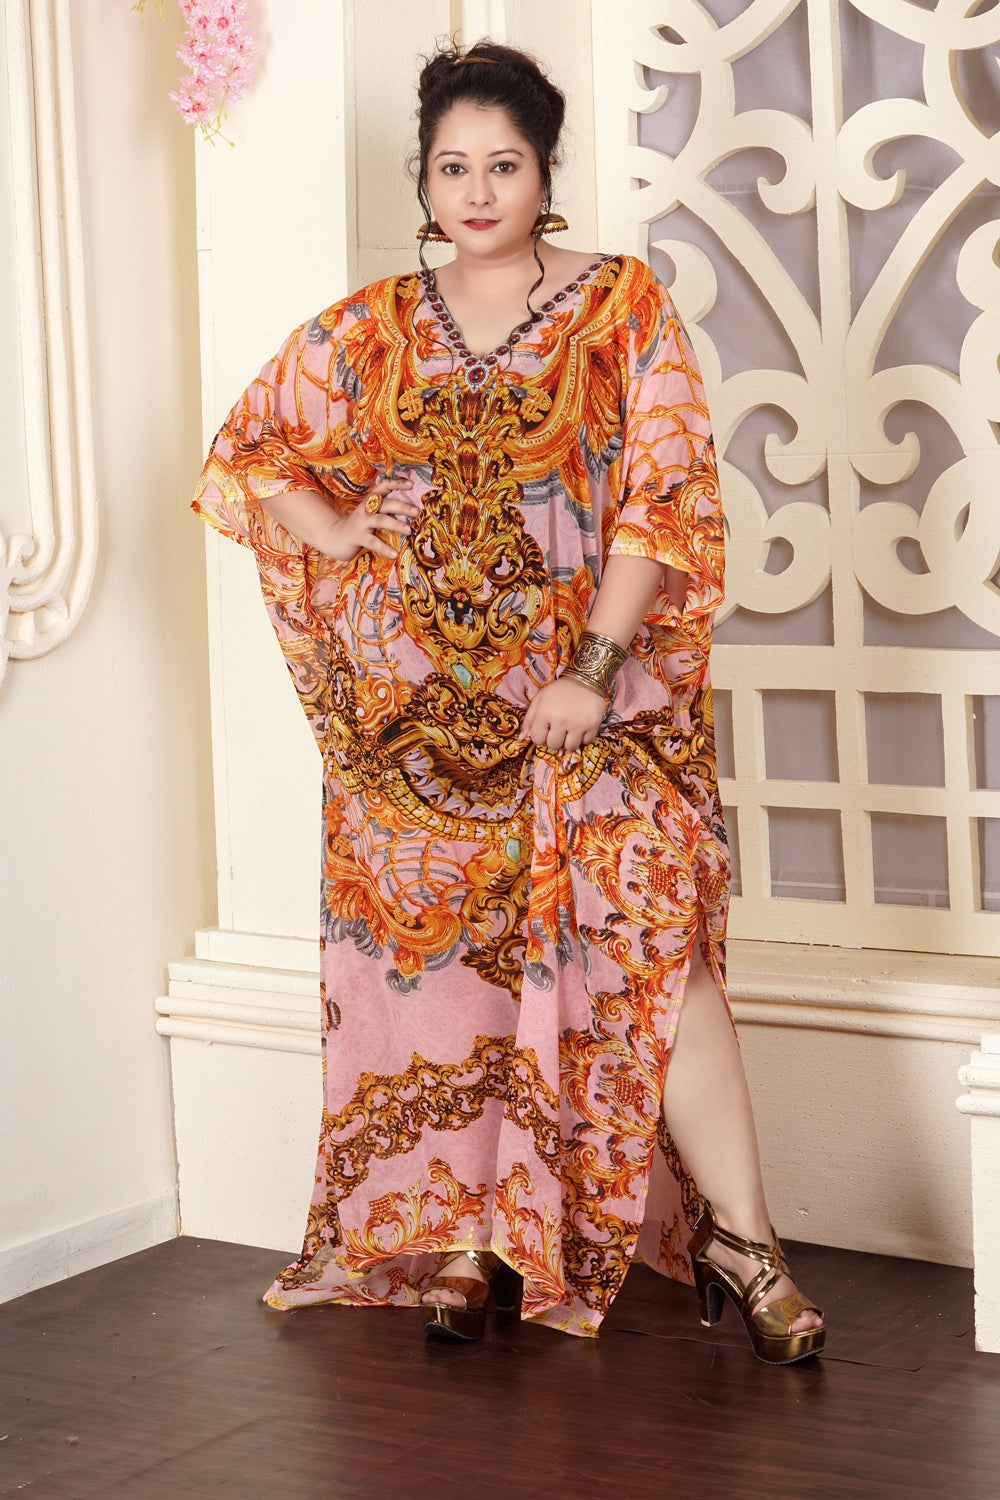 Golden Baroque Print over Maxi Long Cheap Kaftan Dress a Striking Statement a Party Wear - Silk kaftan